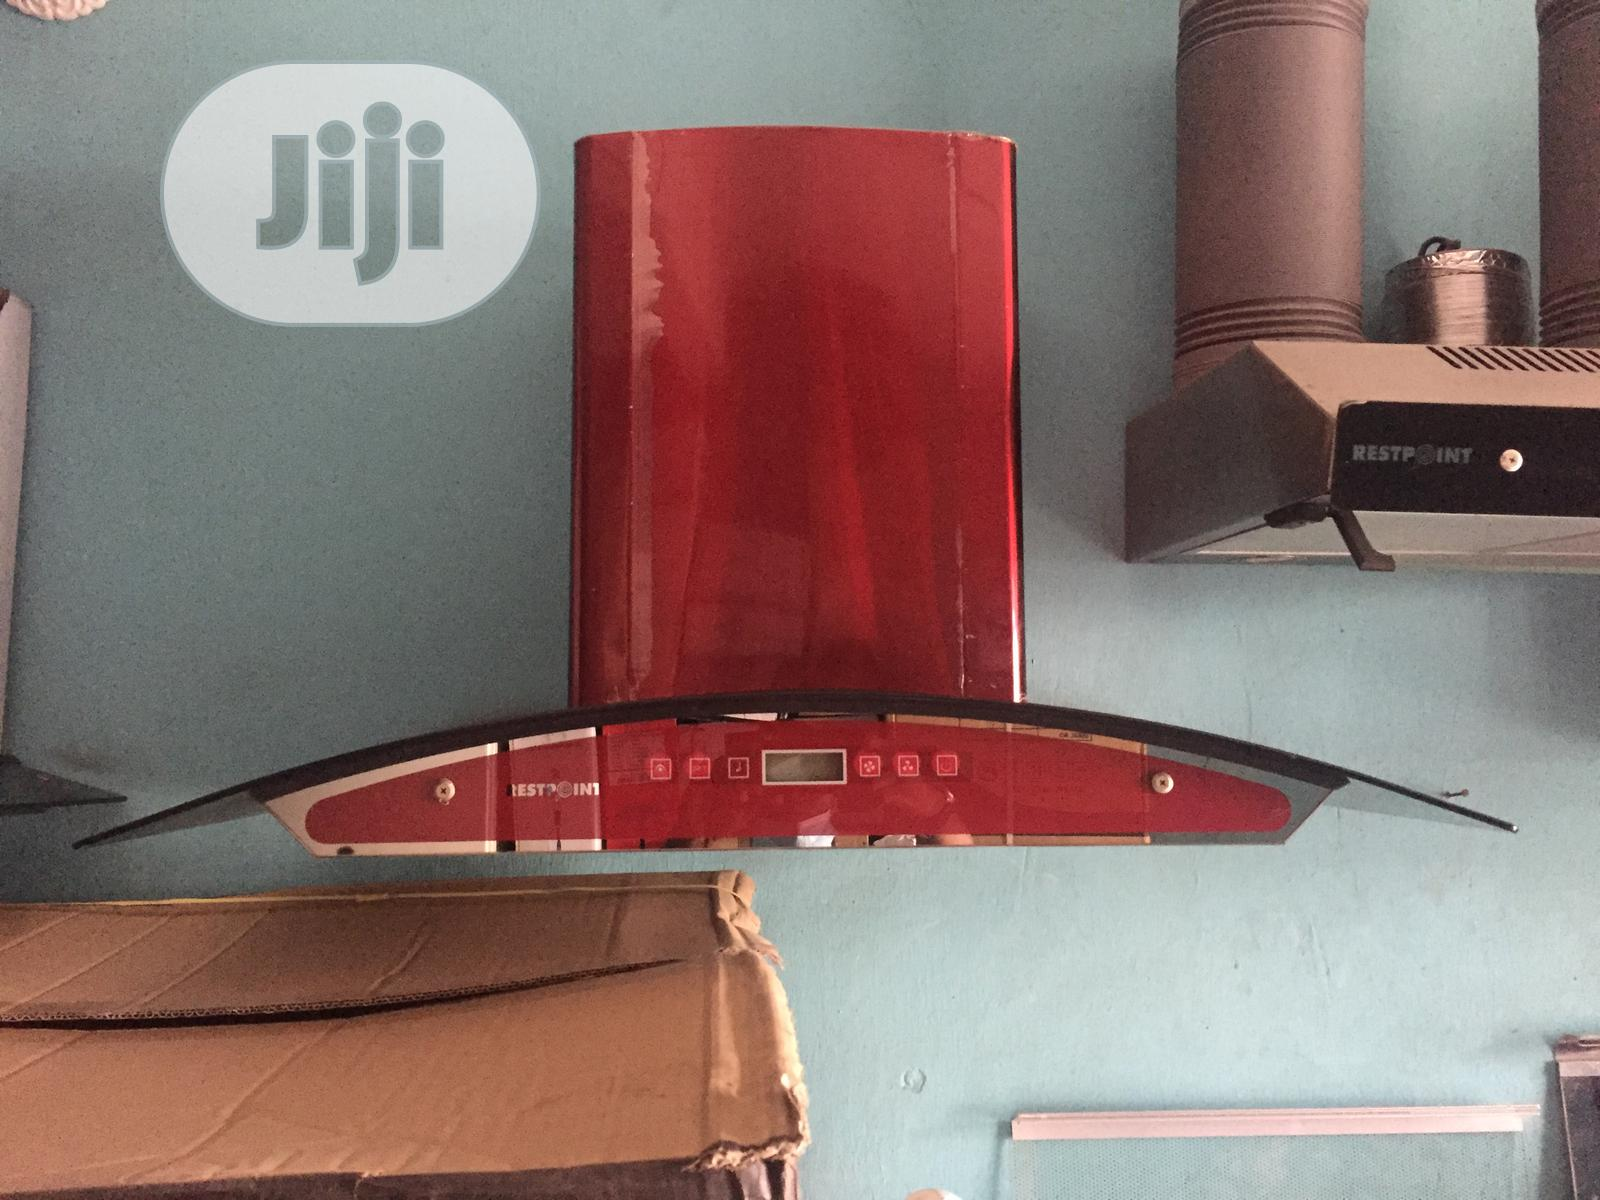 Archive: Restpoint 60 X 90 Automatic Range Hood (Smoke Expeller)